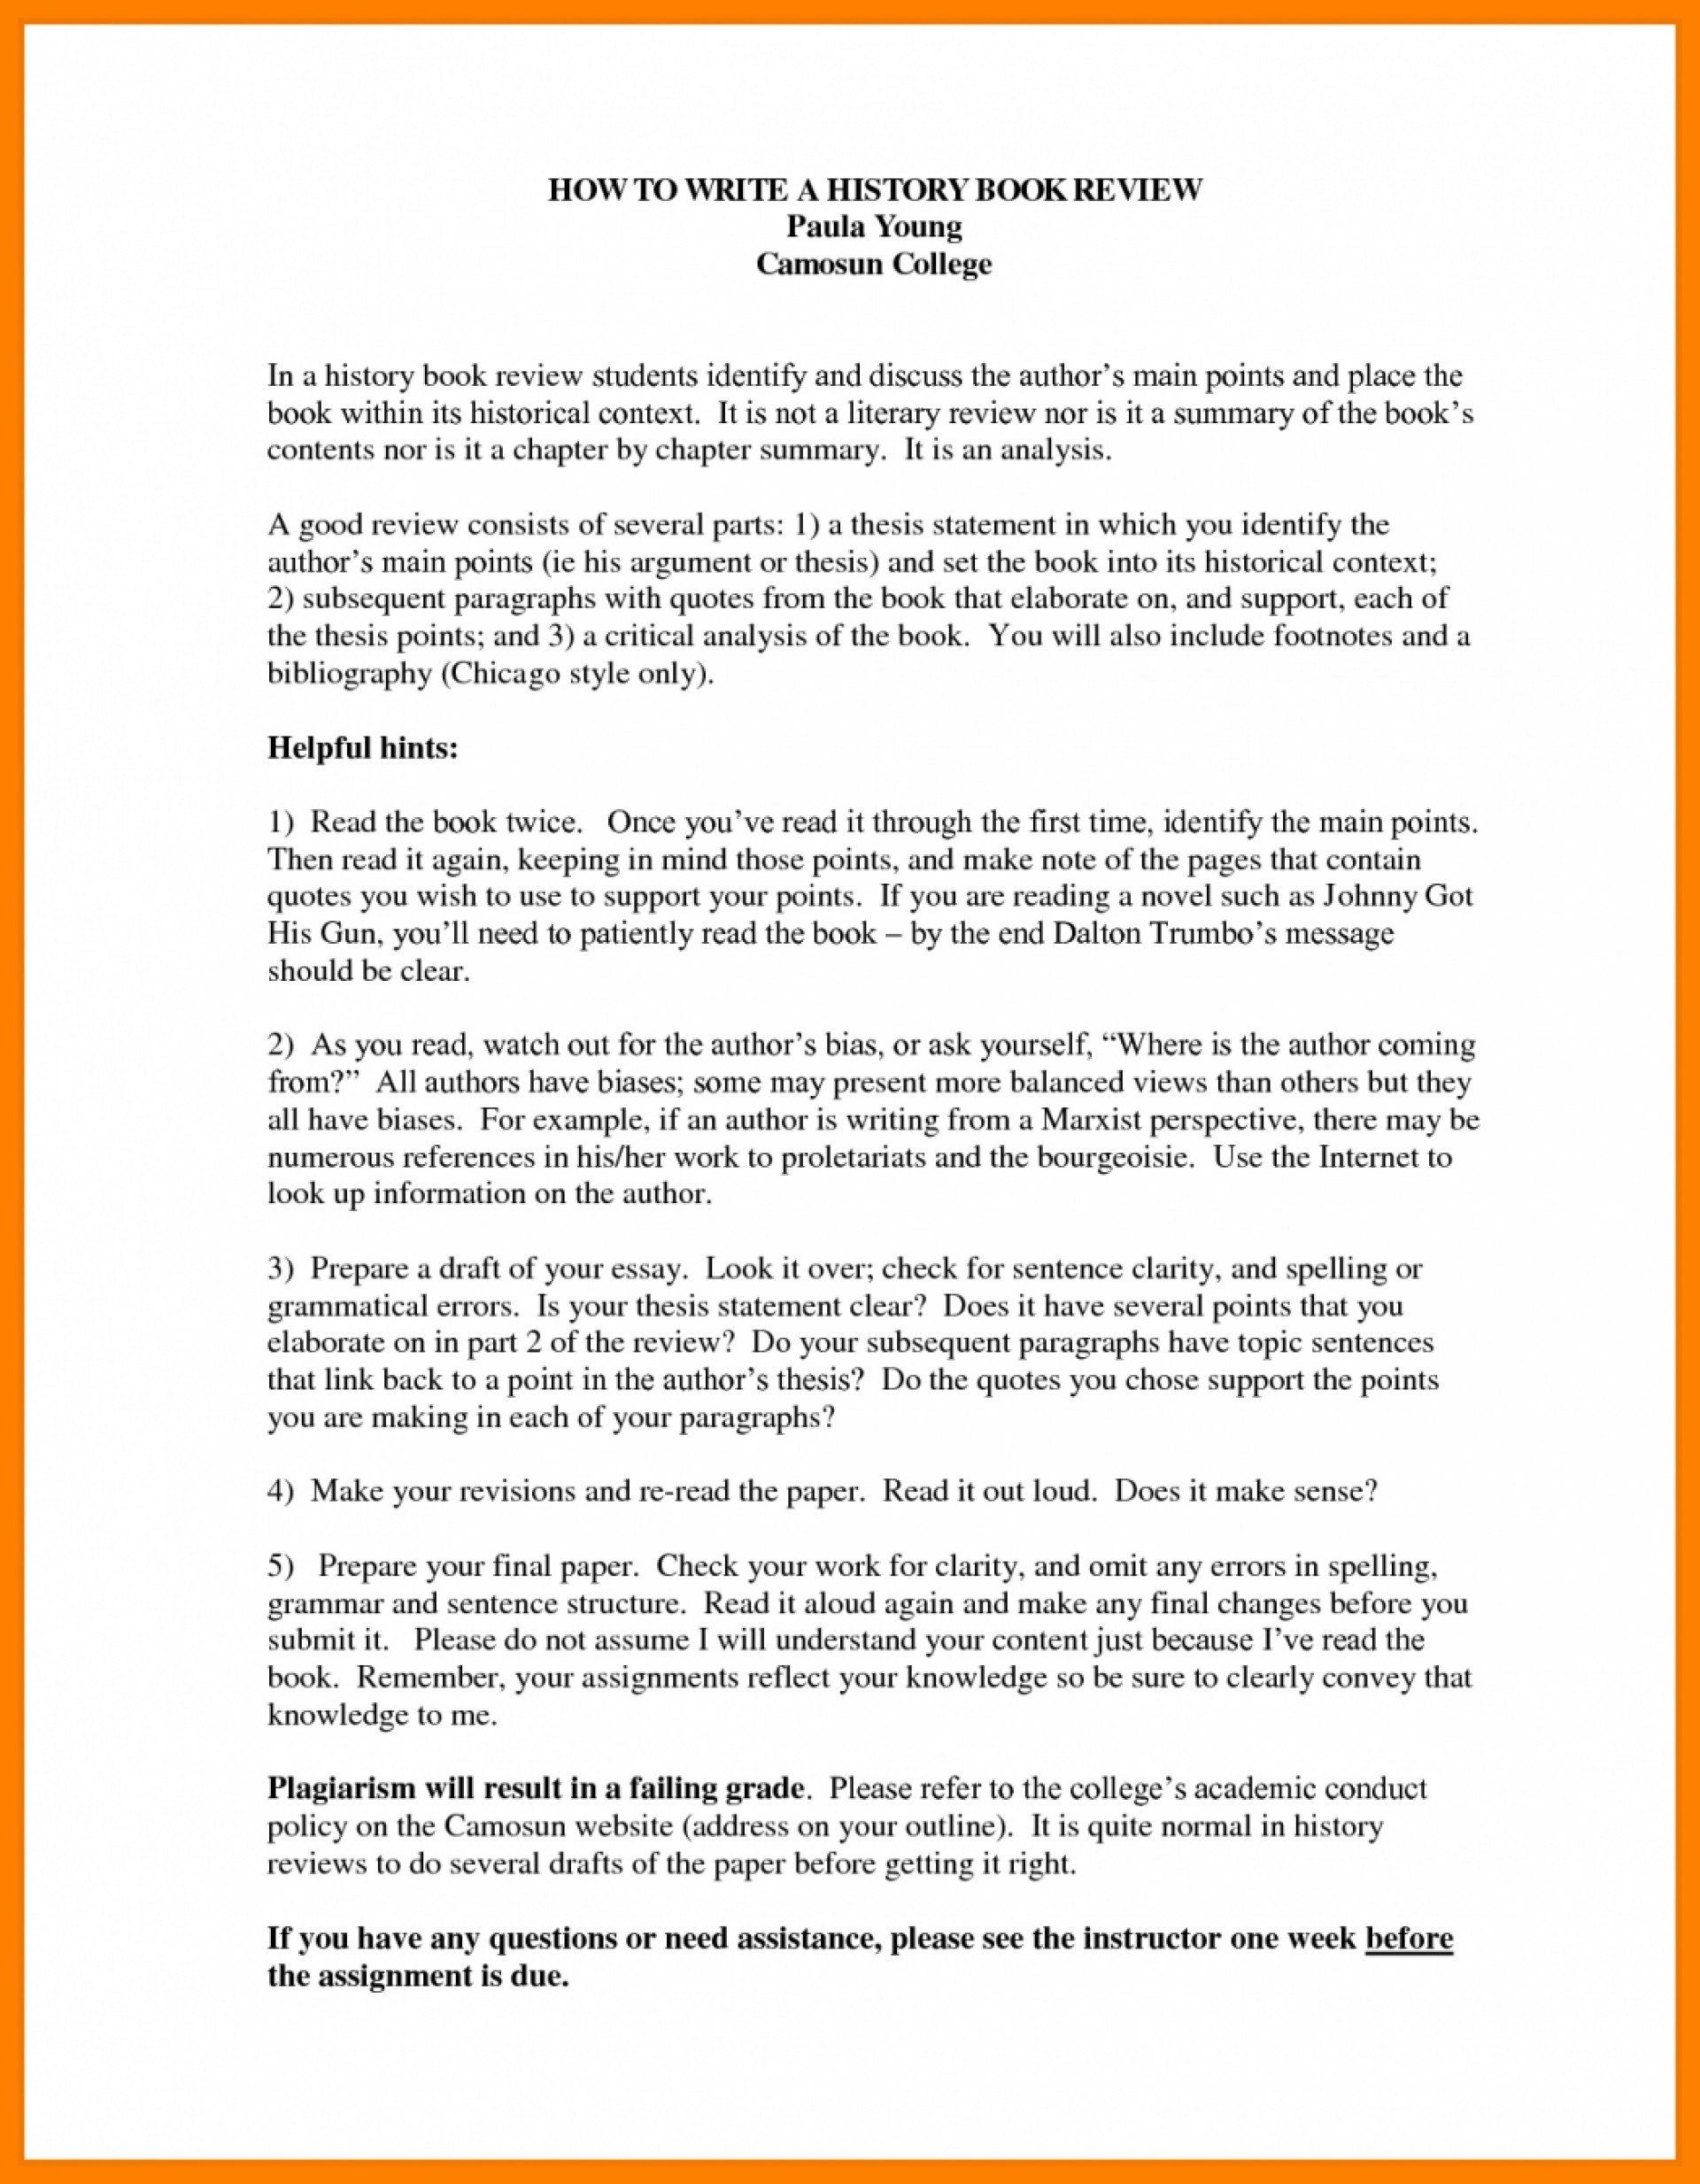 Book Analysi Format Sample Lovely 009 How To Write Review Essay Example Idea Collection Template Writing A Report Templates Cite Chapter Chicago